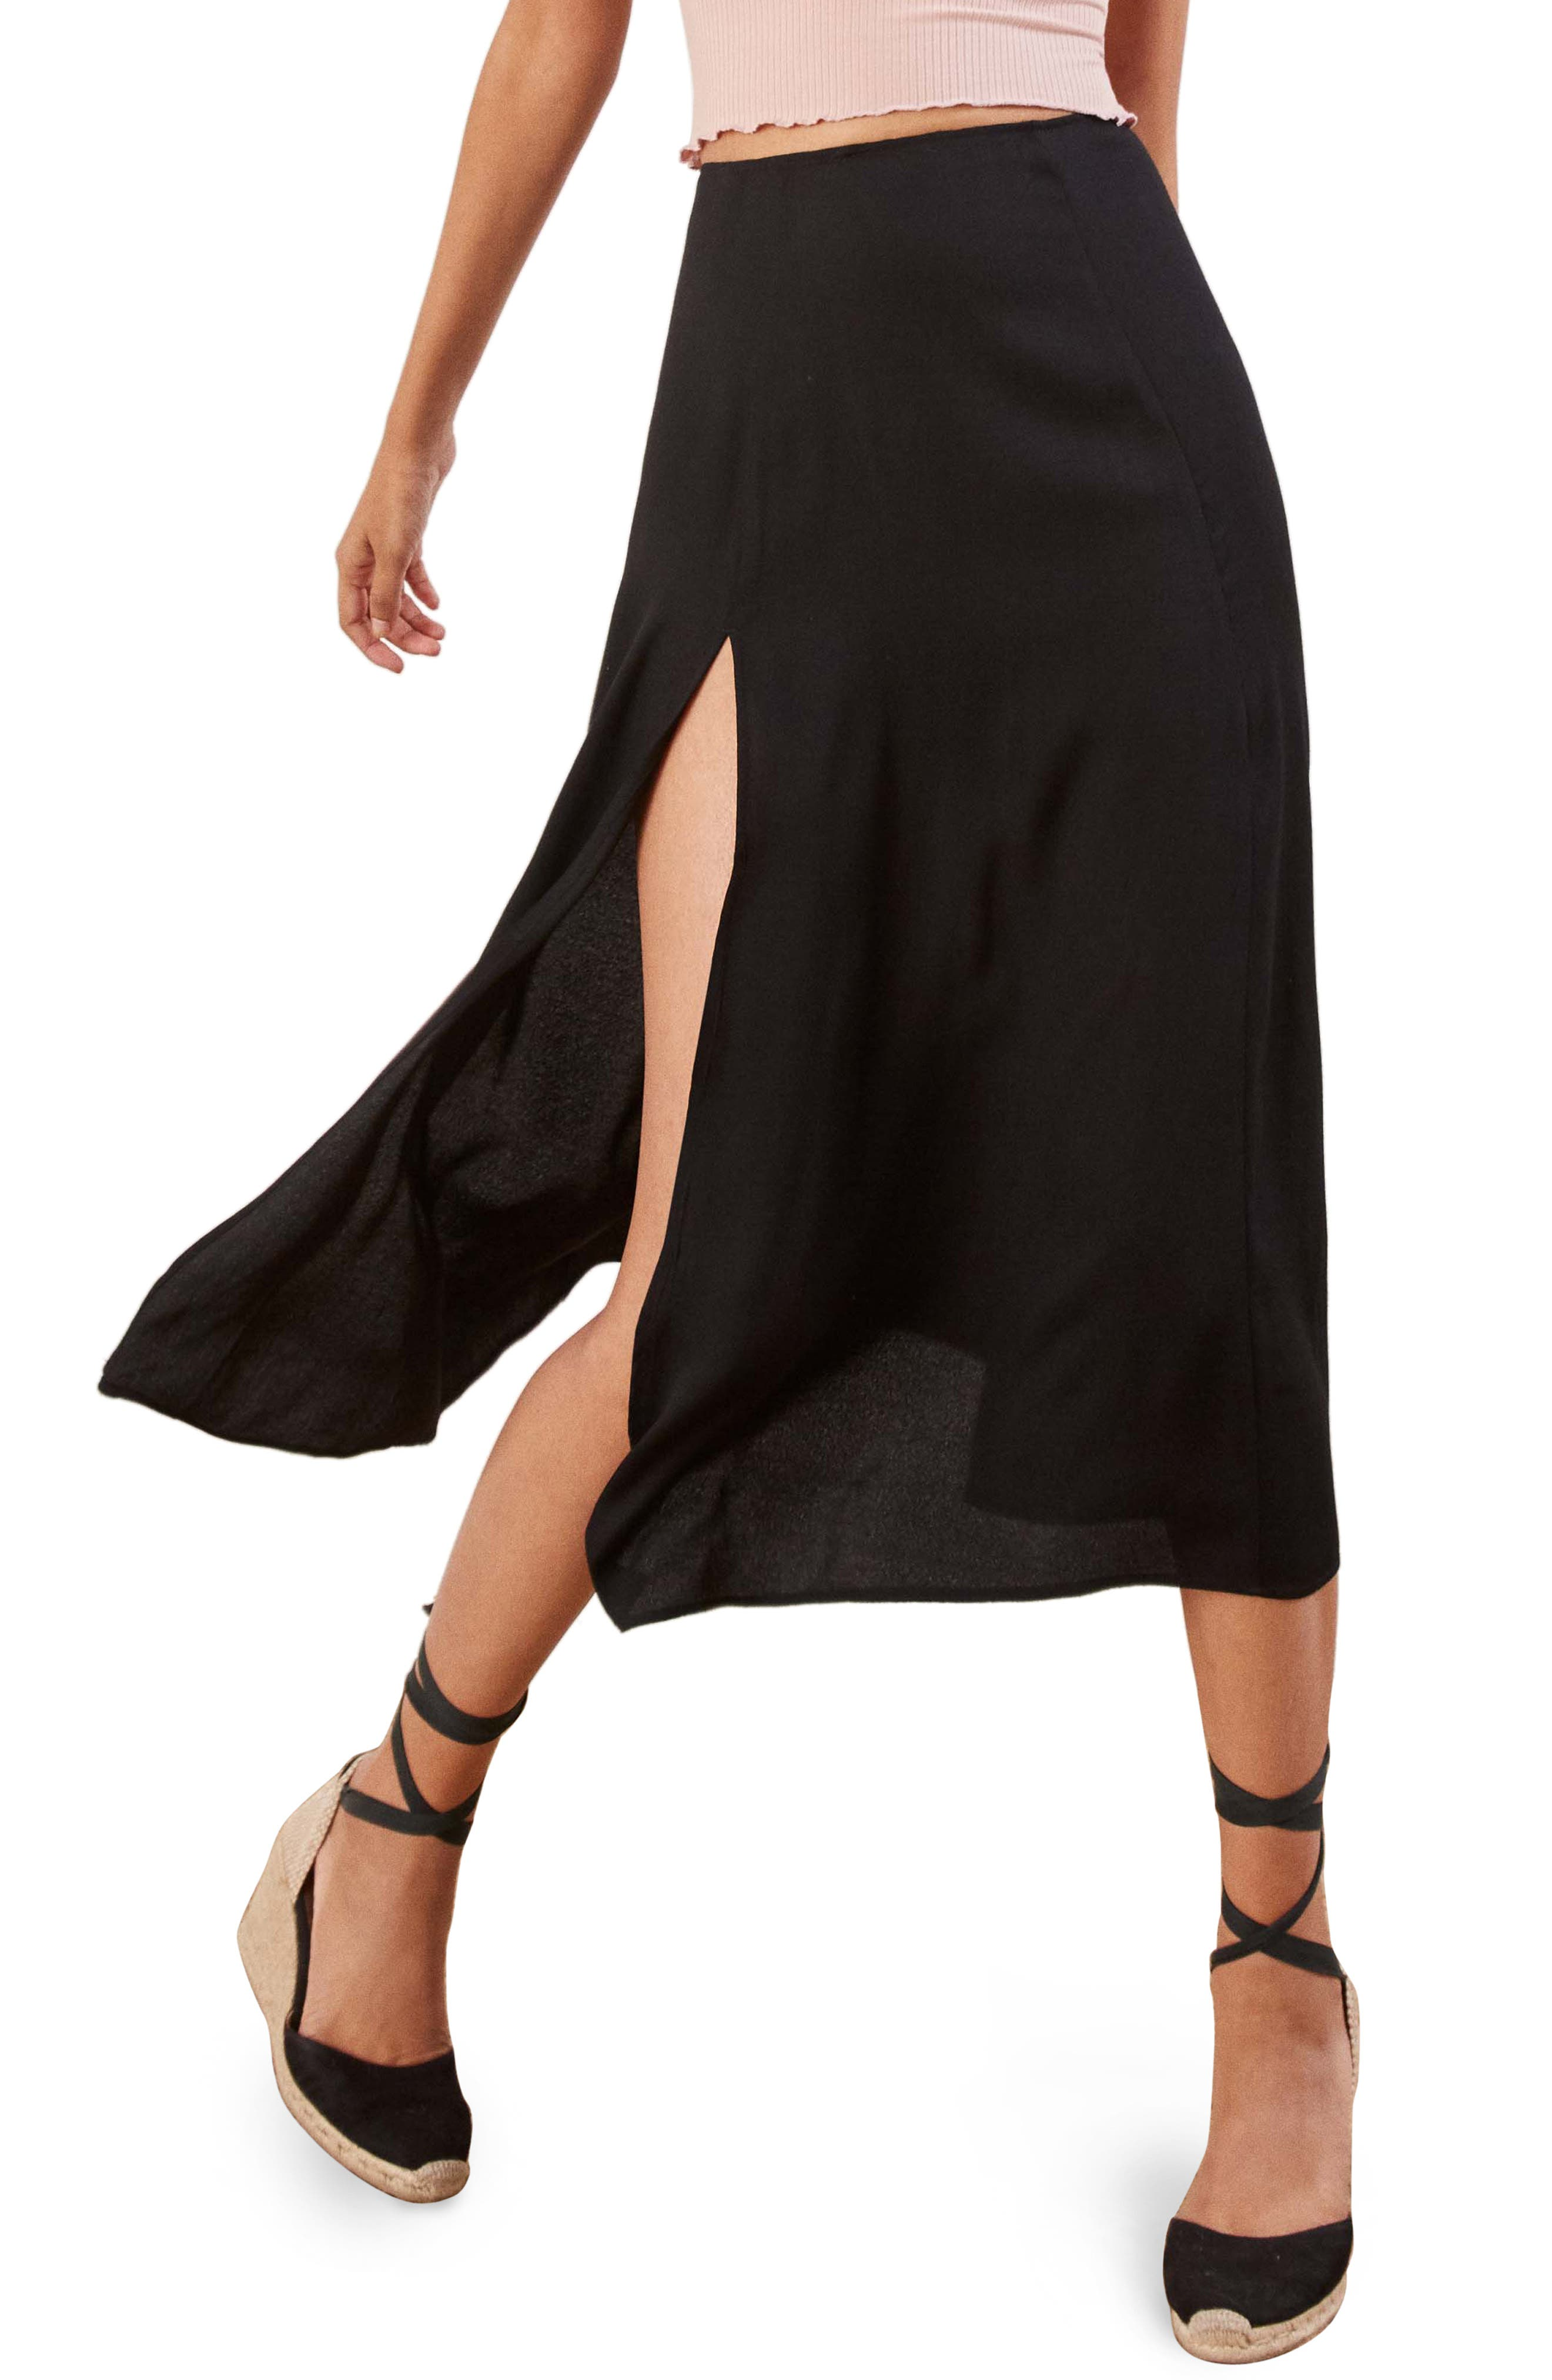 Show and go-go in a side-slashed skirt that let\\\'s you get your groove on. Style Name: Reformation Zoe Side Slit Midi Skirt. Style Number: 6015658 1. Available in stores.